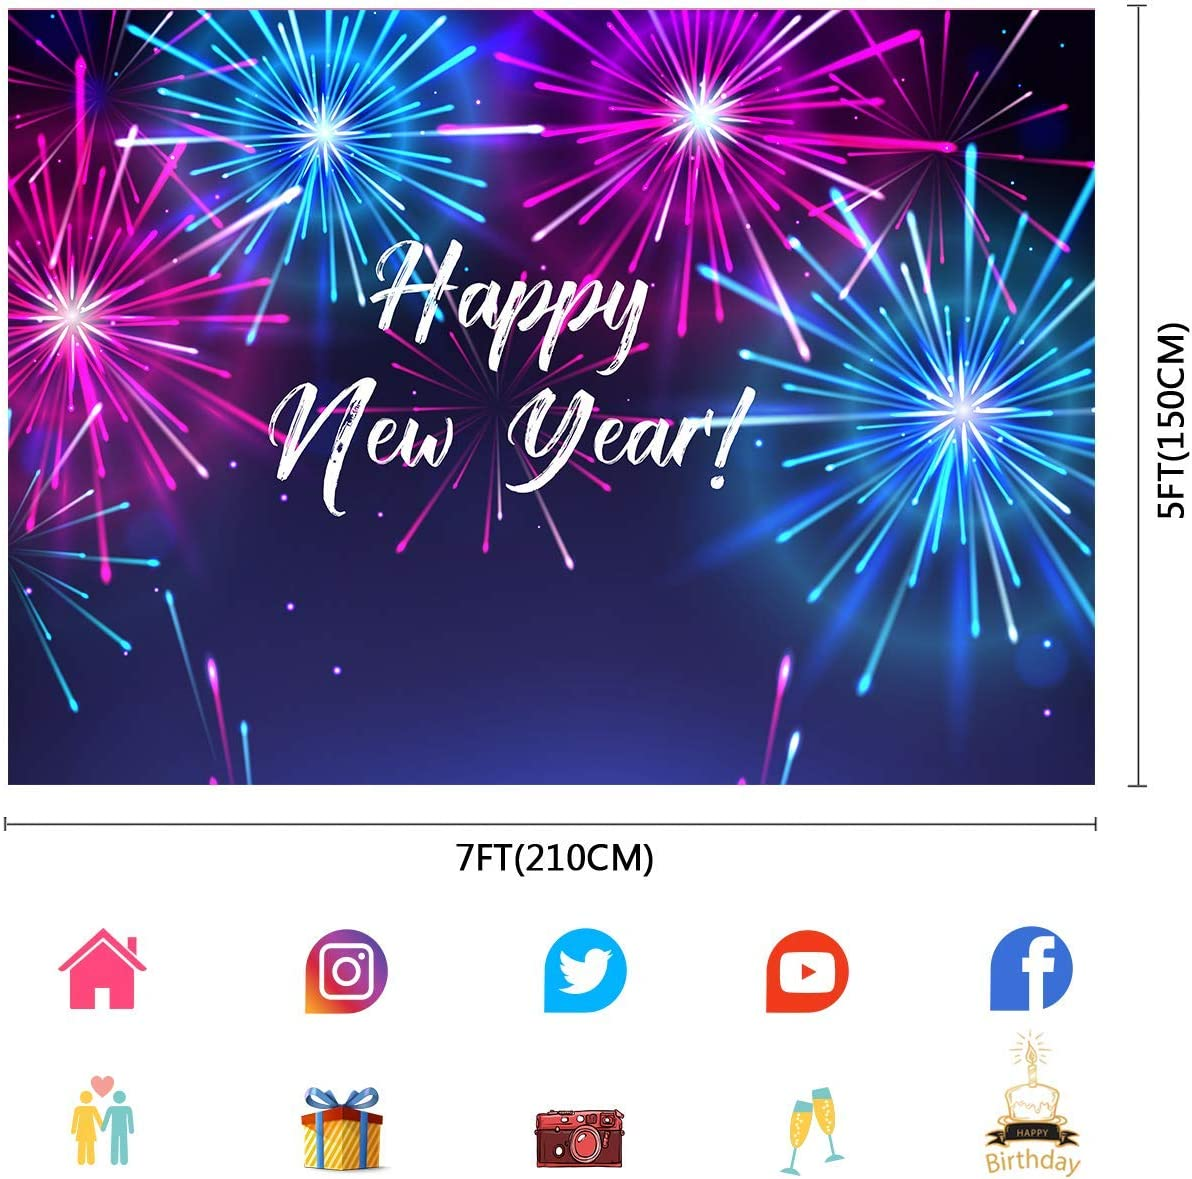 10x6.5ft Happy New Year Backdrop Photo Booth Background Photography Studio Props LLFU015